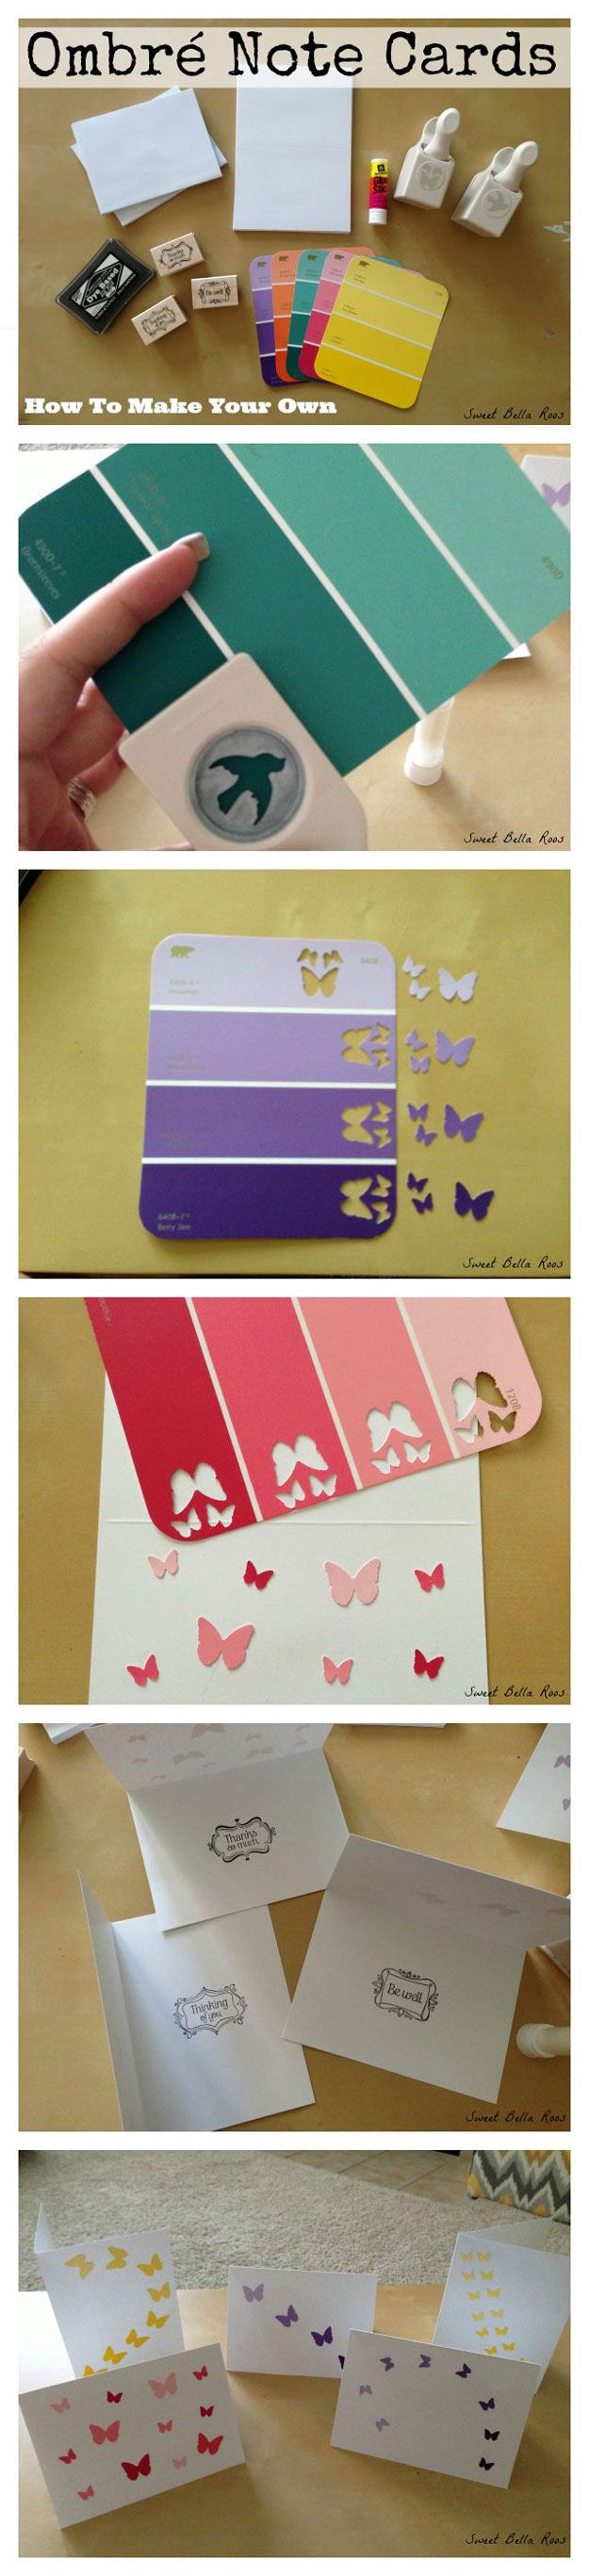 Cheap and Easy Scrapbook Making Ideas | Ombre Paint Chip Design by DIY Ready at http://diyready.com/cool-scrapbook-ideas-you-should-make/